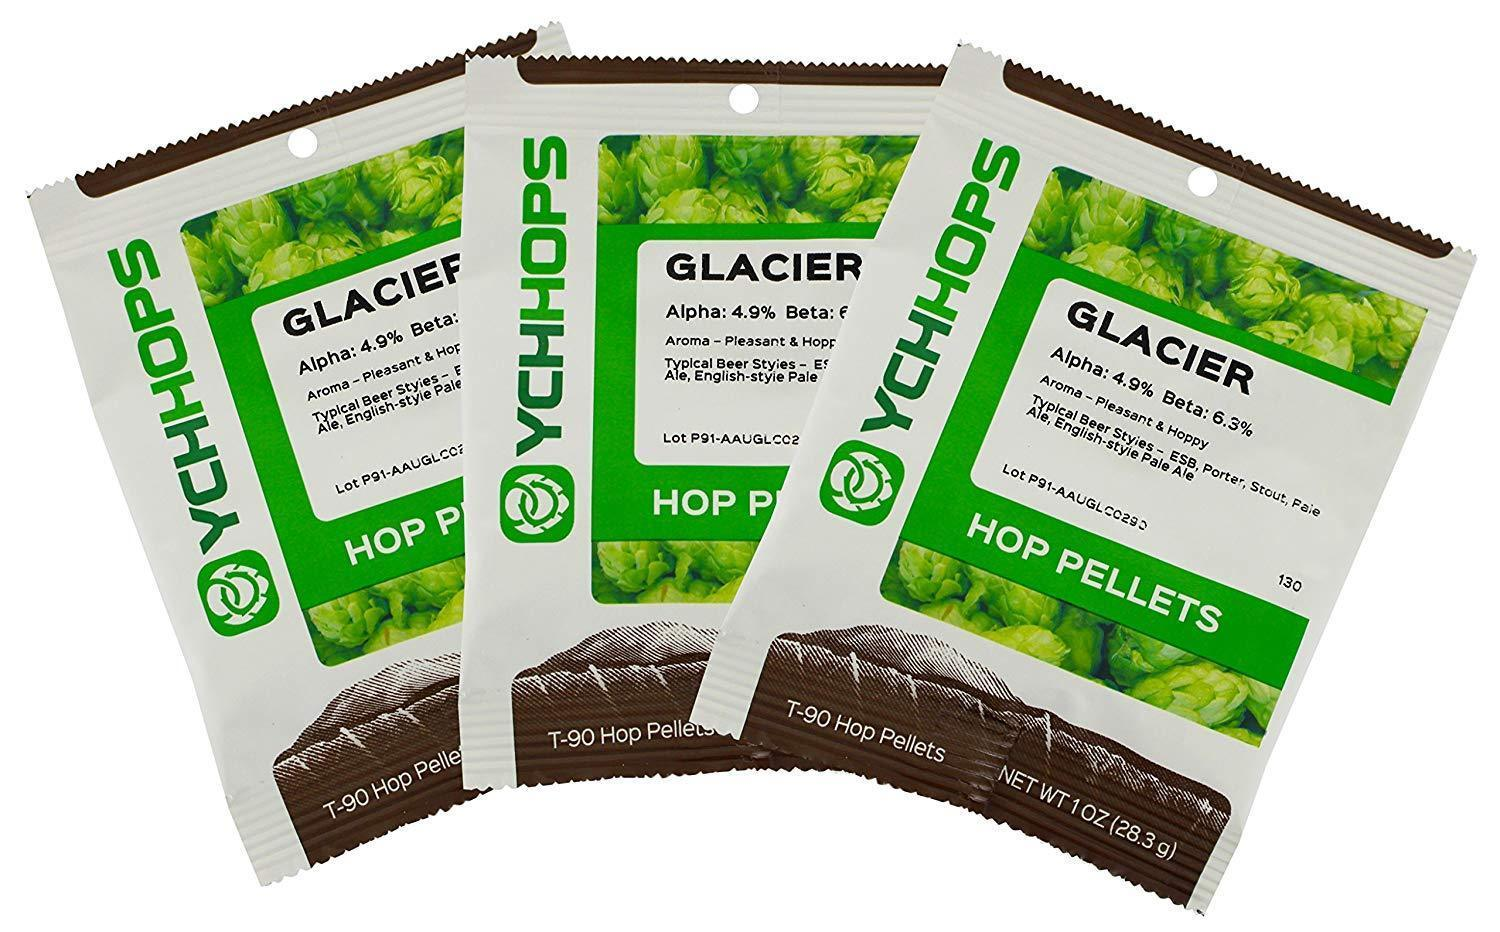 3PK GLACIER HOP PELLETS SMOOTH AND FRUITY BLACKBERRY AROMA 3oz FACTORY PA